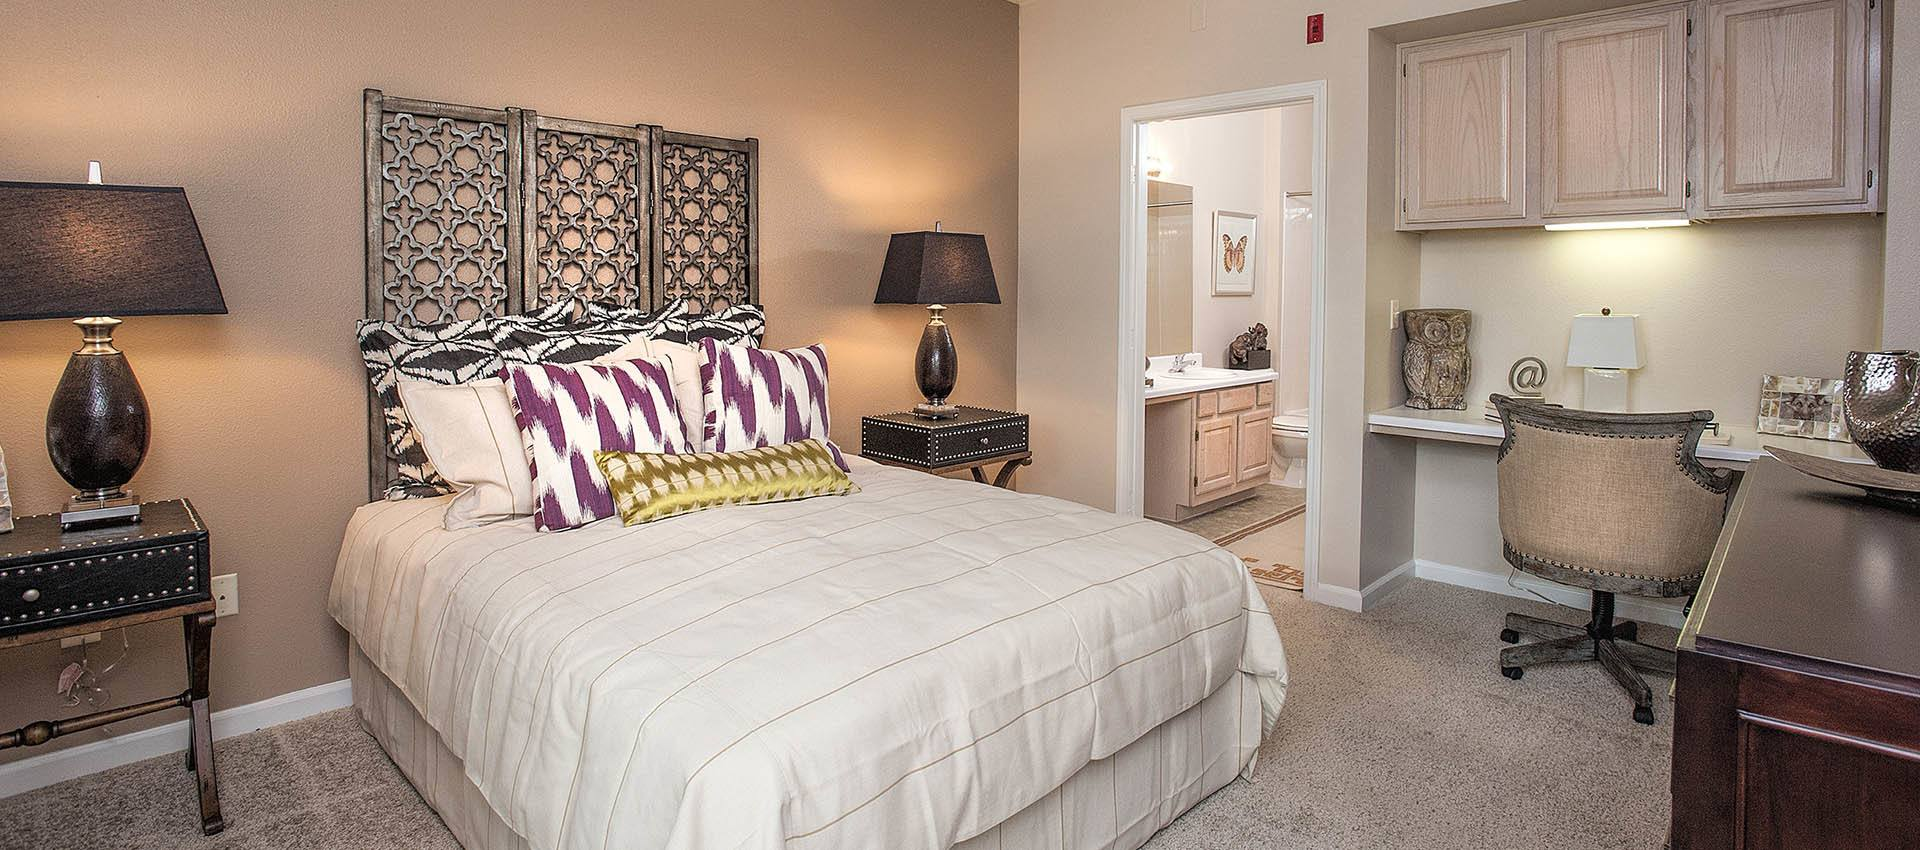 Master bedroom luxury kitchen at The Vintage at South Meadows Condominium Rentals in Reno